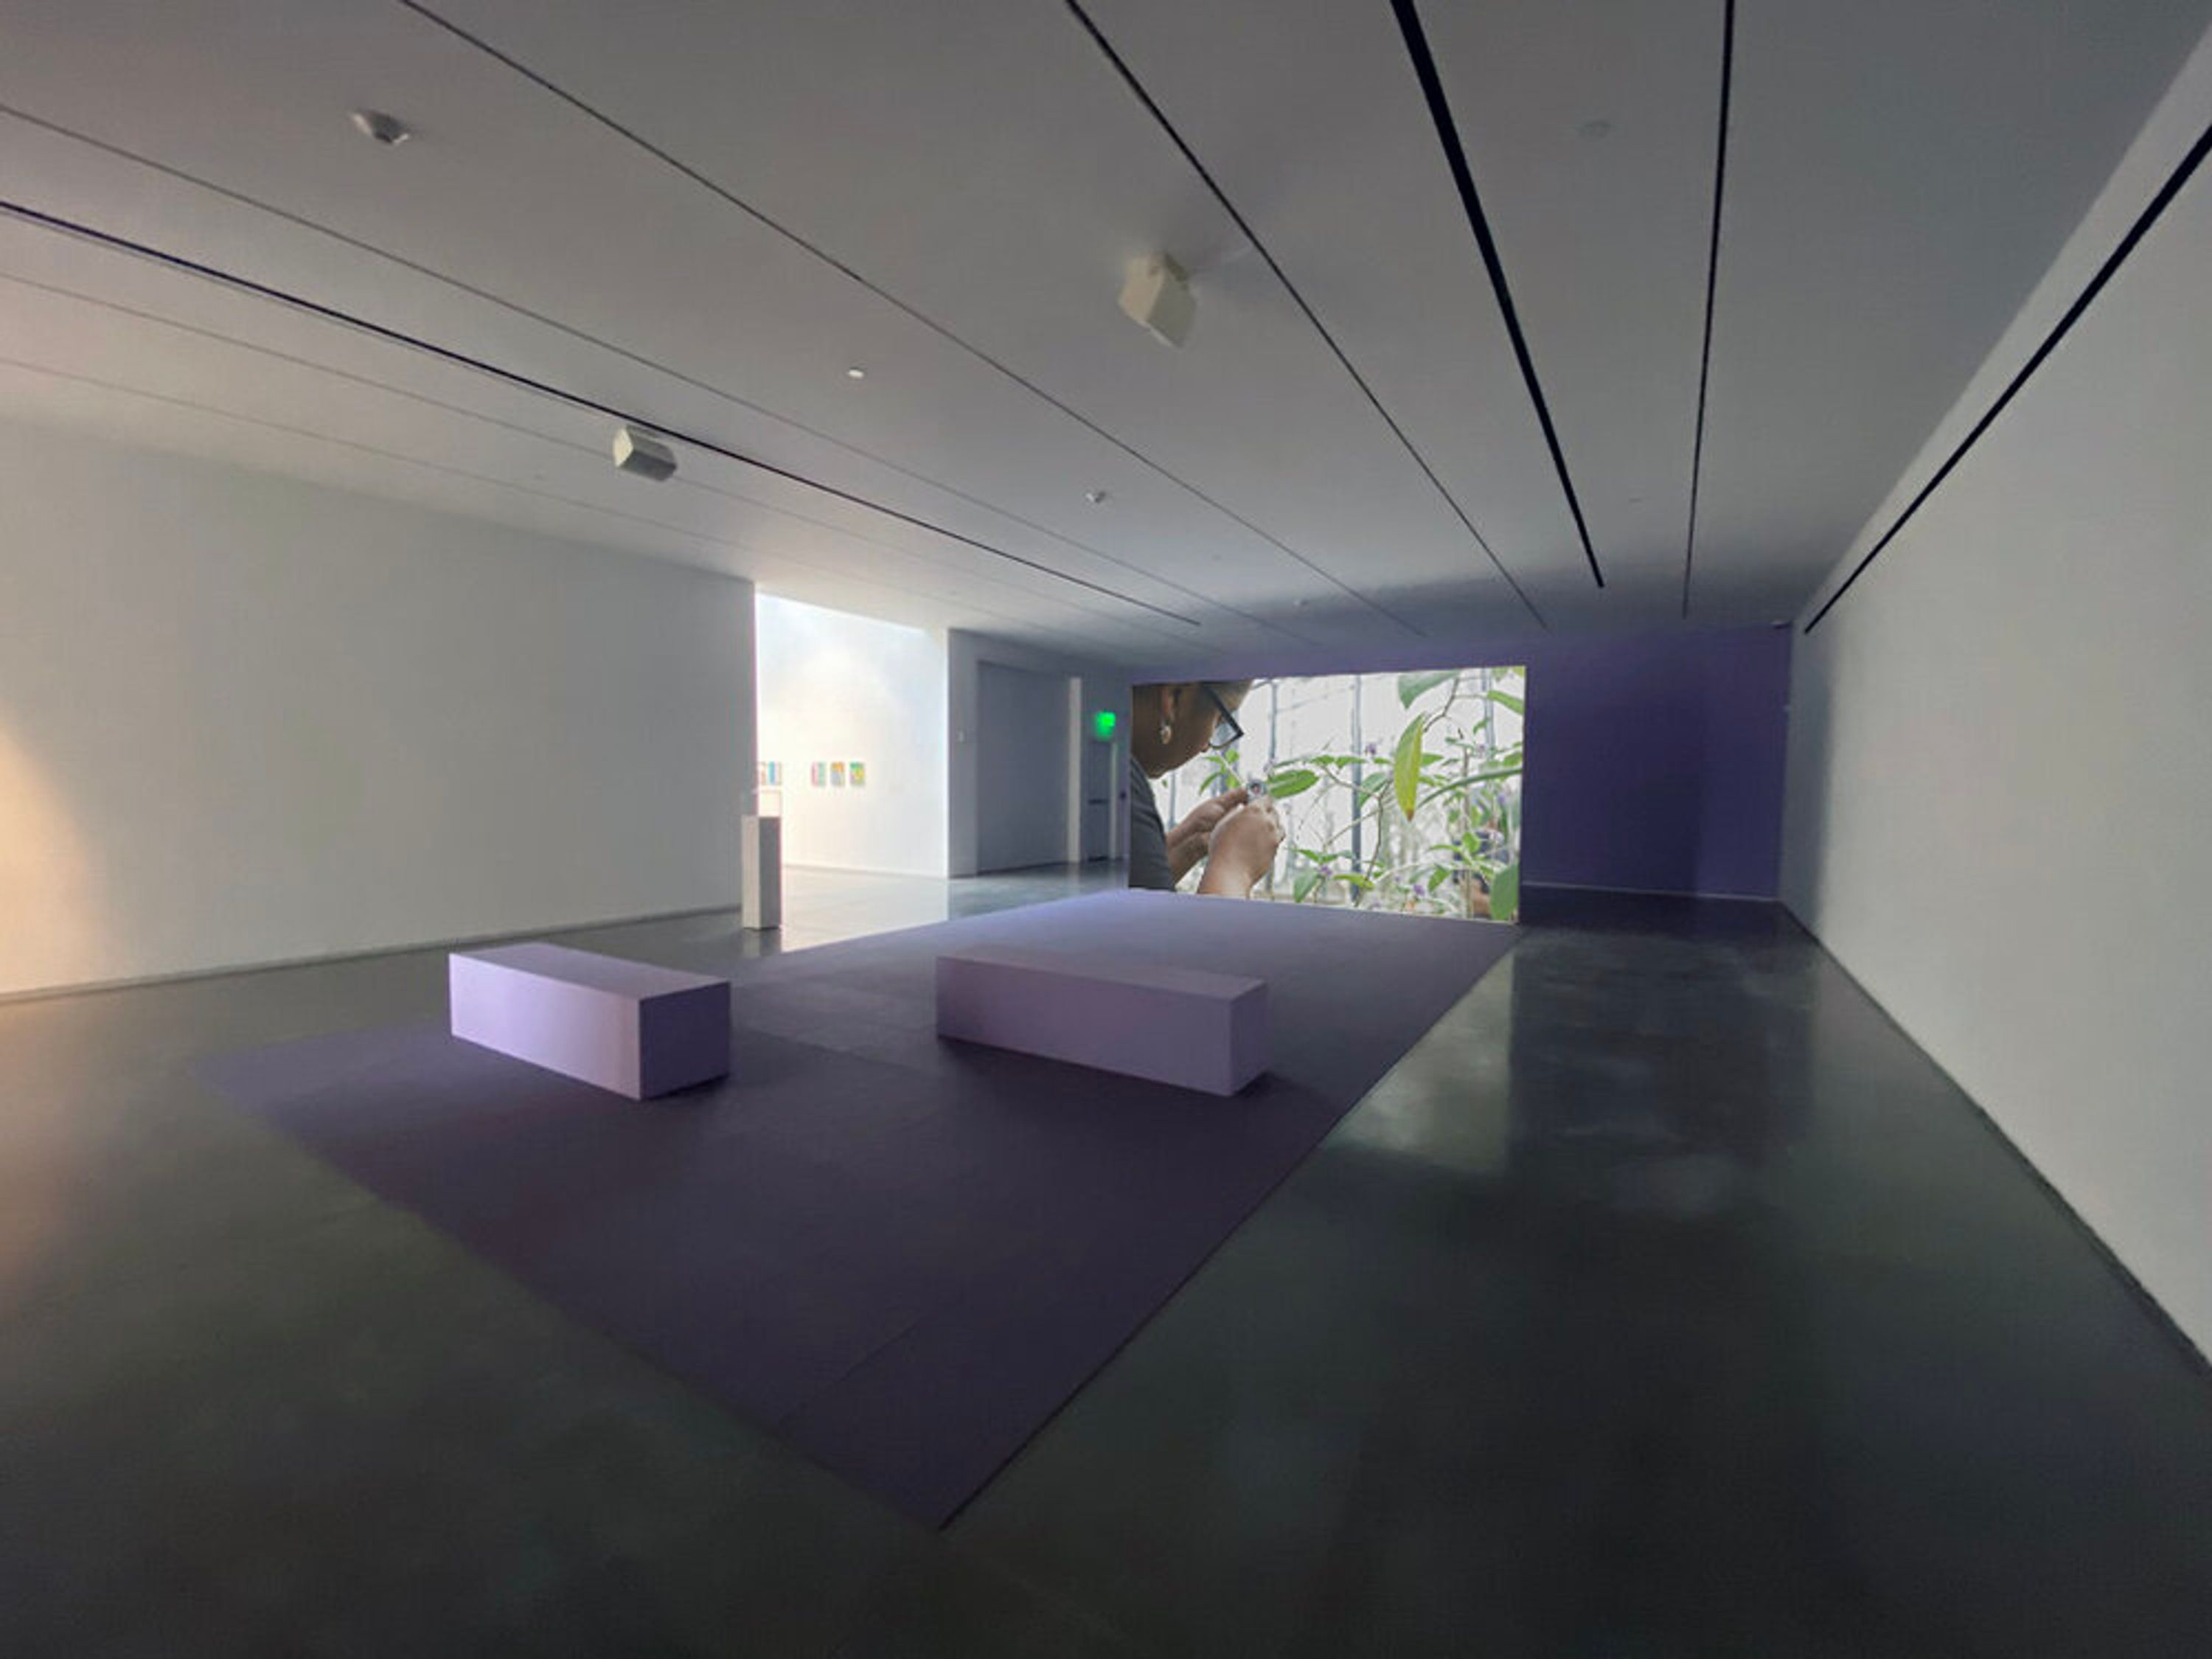 Installation view of There are things in this world that are yet to be named (2020), from the exhibition Unnamed for Decades, Center for Maine Contemporary Art.